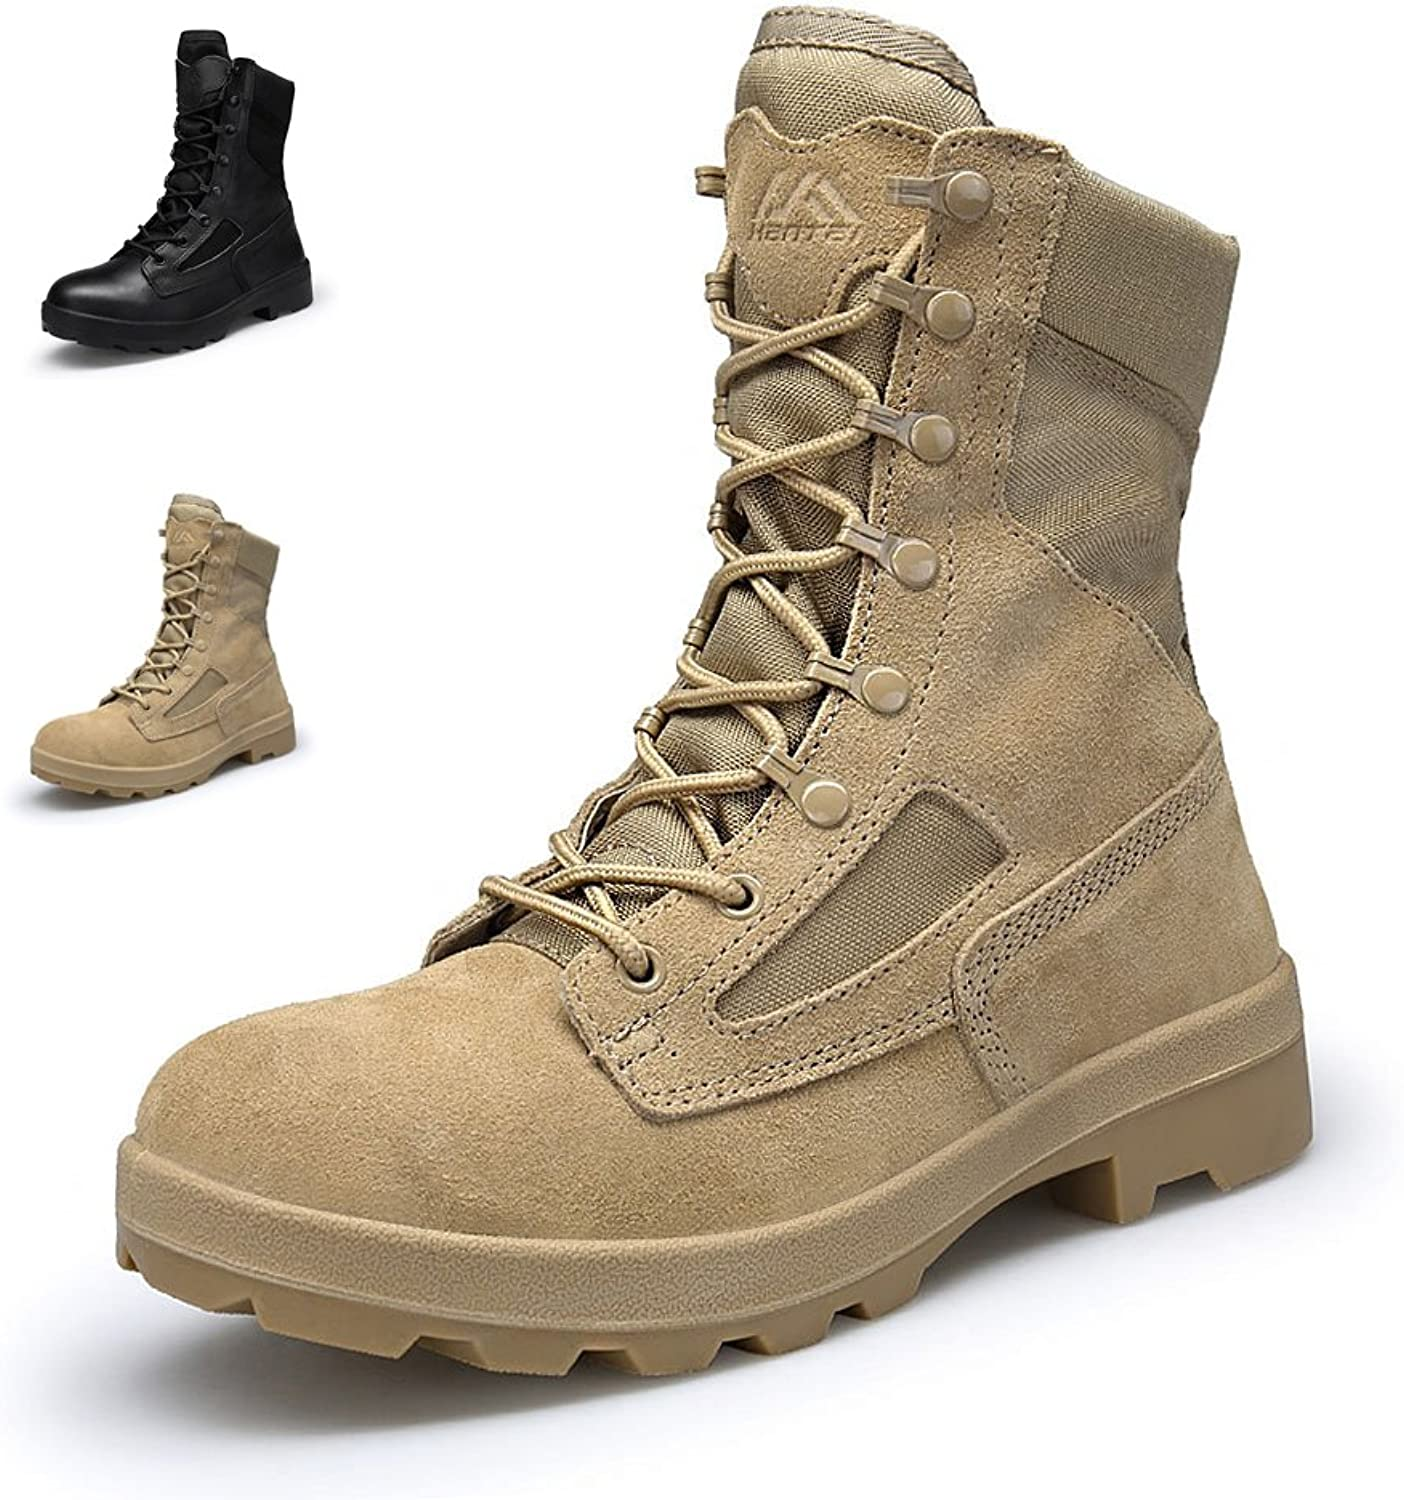 ENLEN&BENNA Army Boots for Men